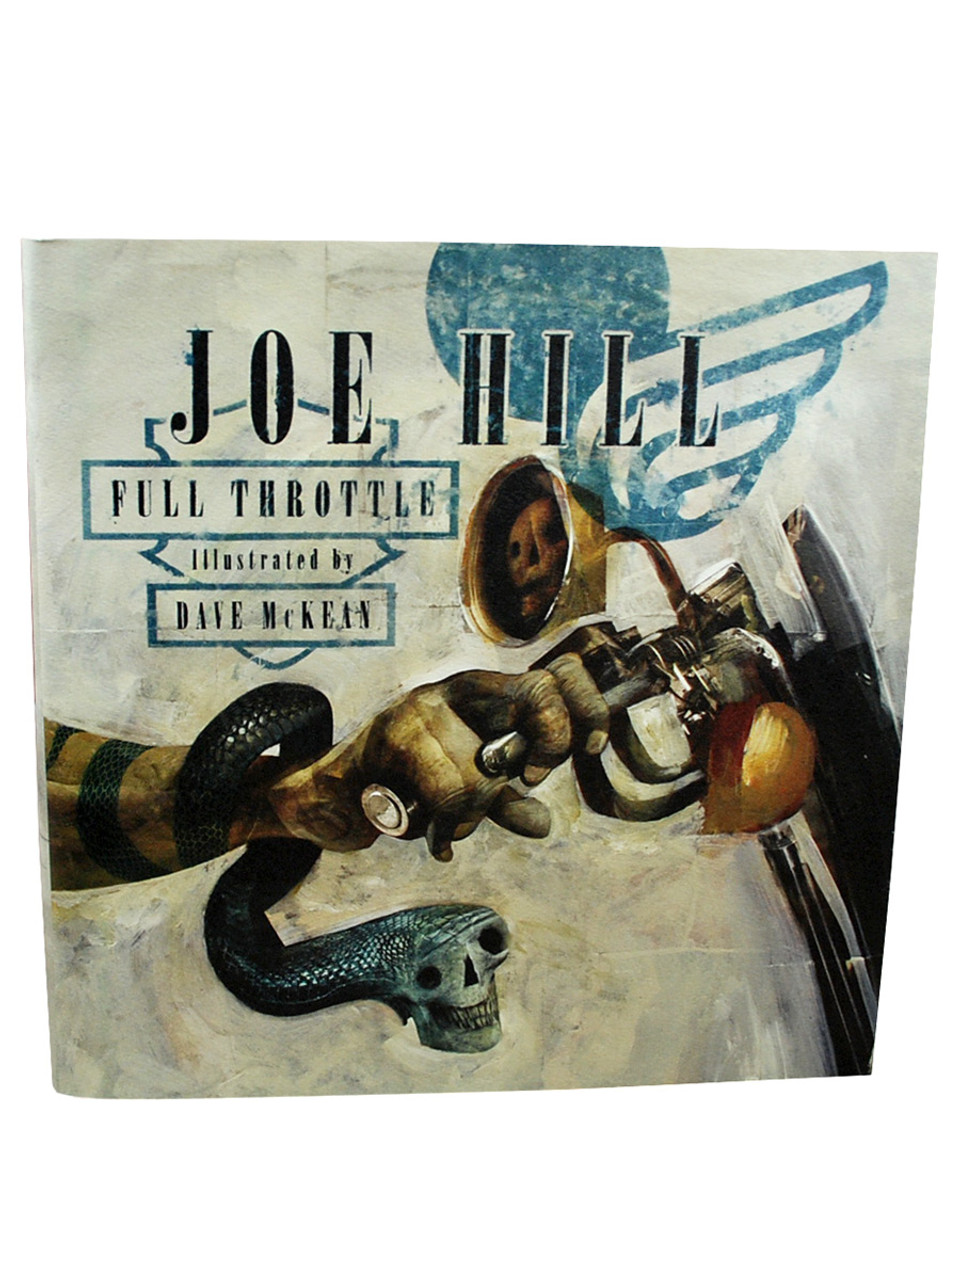 "Joe Hill ""Full Throttle"" Signed Limited Edition No. 510 of 750, Slipcased [Very Fine]"